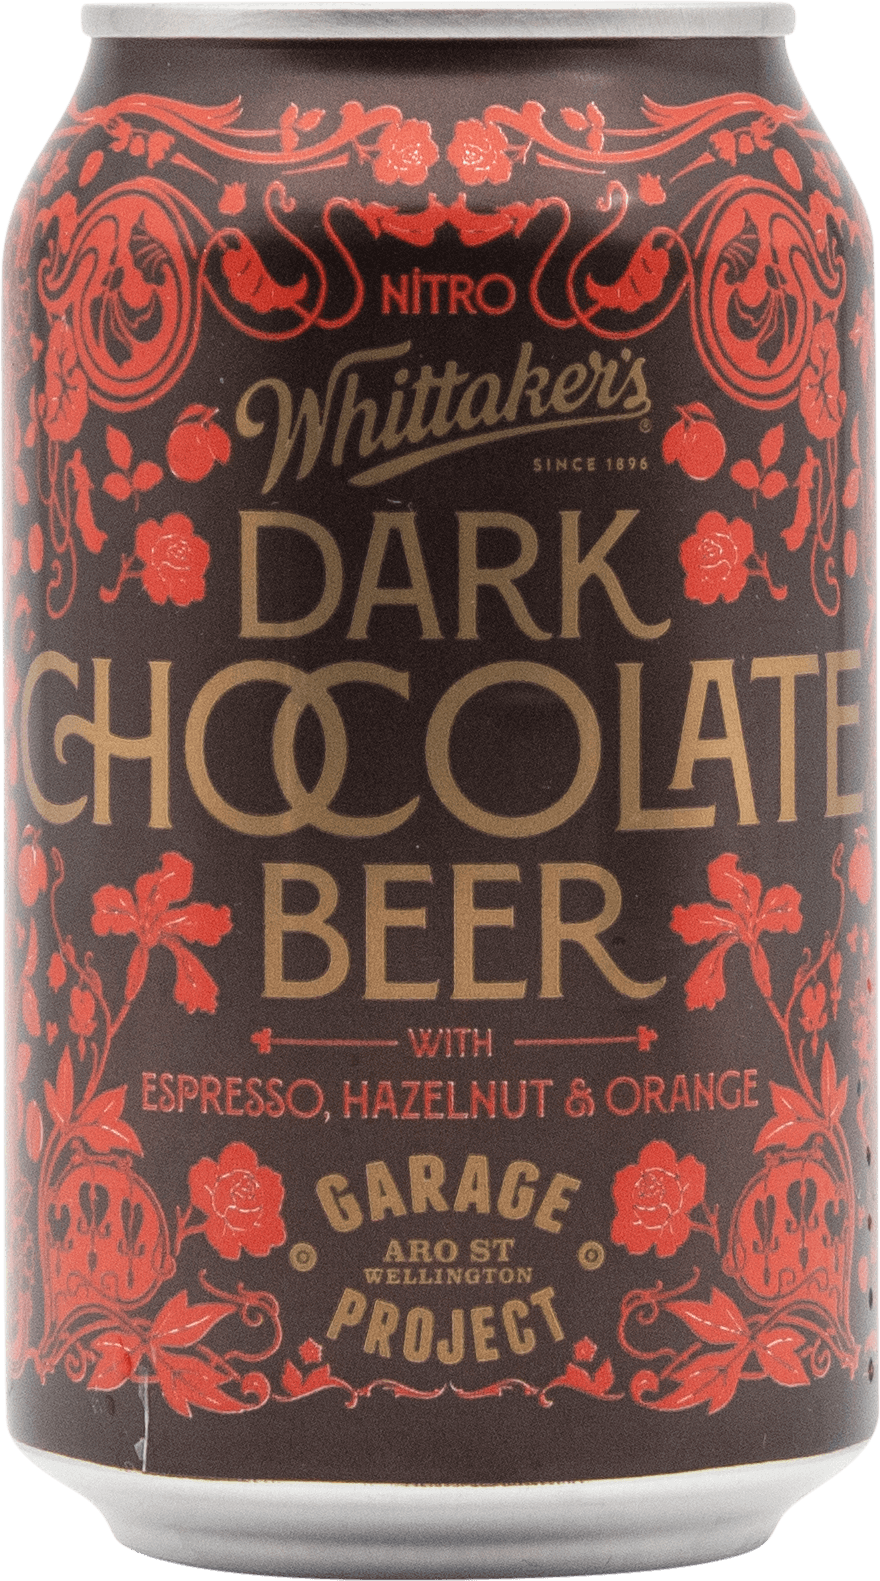 Garage Project Whittaker's Dark Chocolate Beer